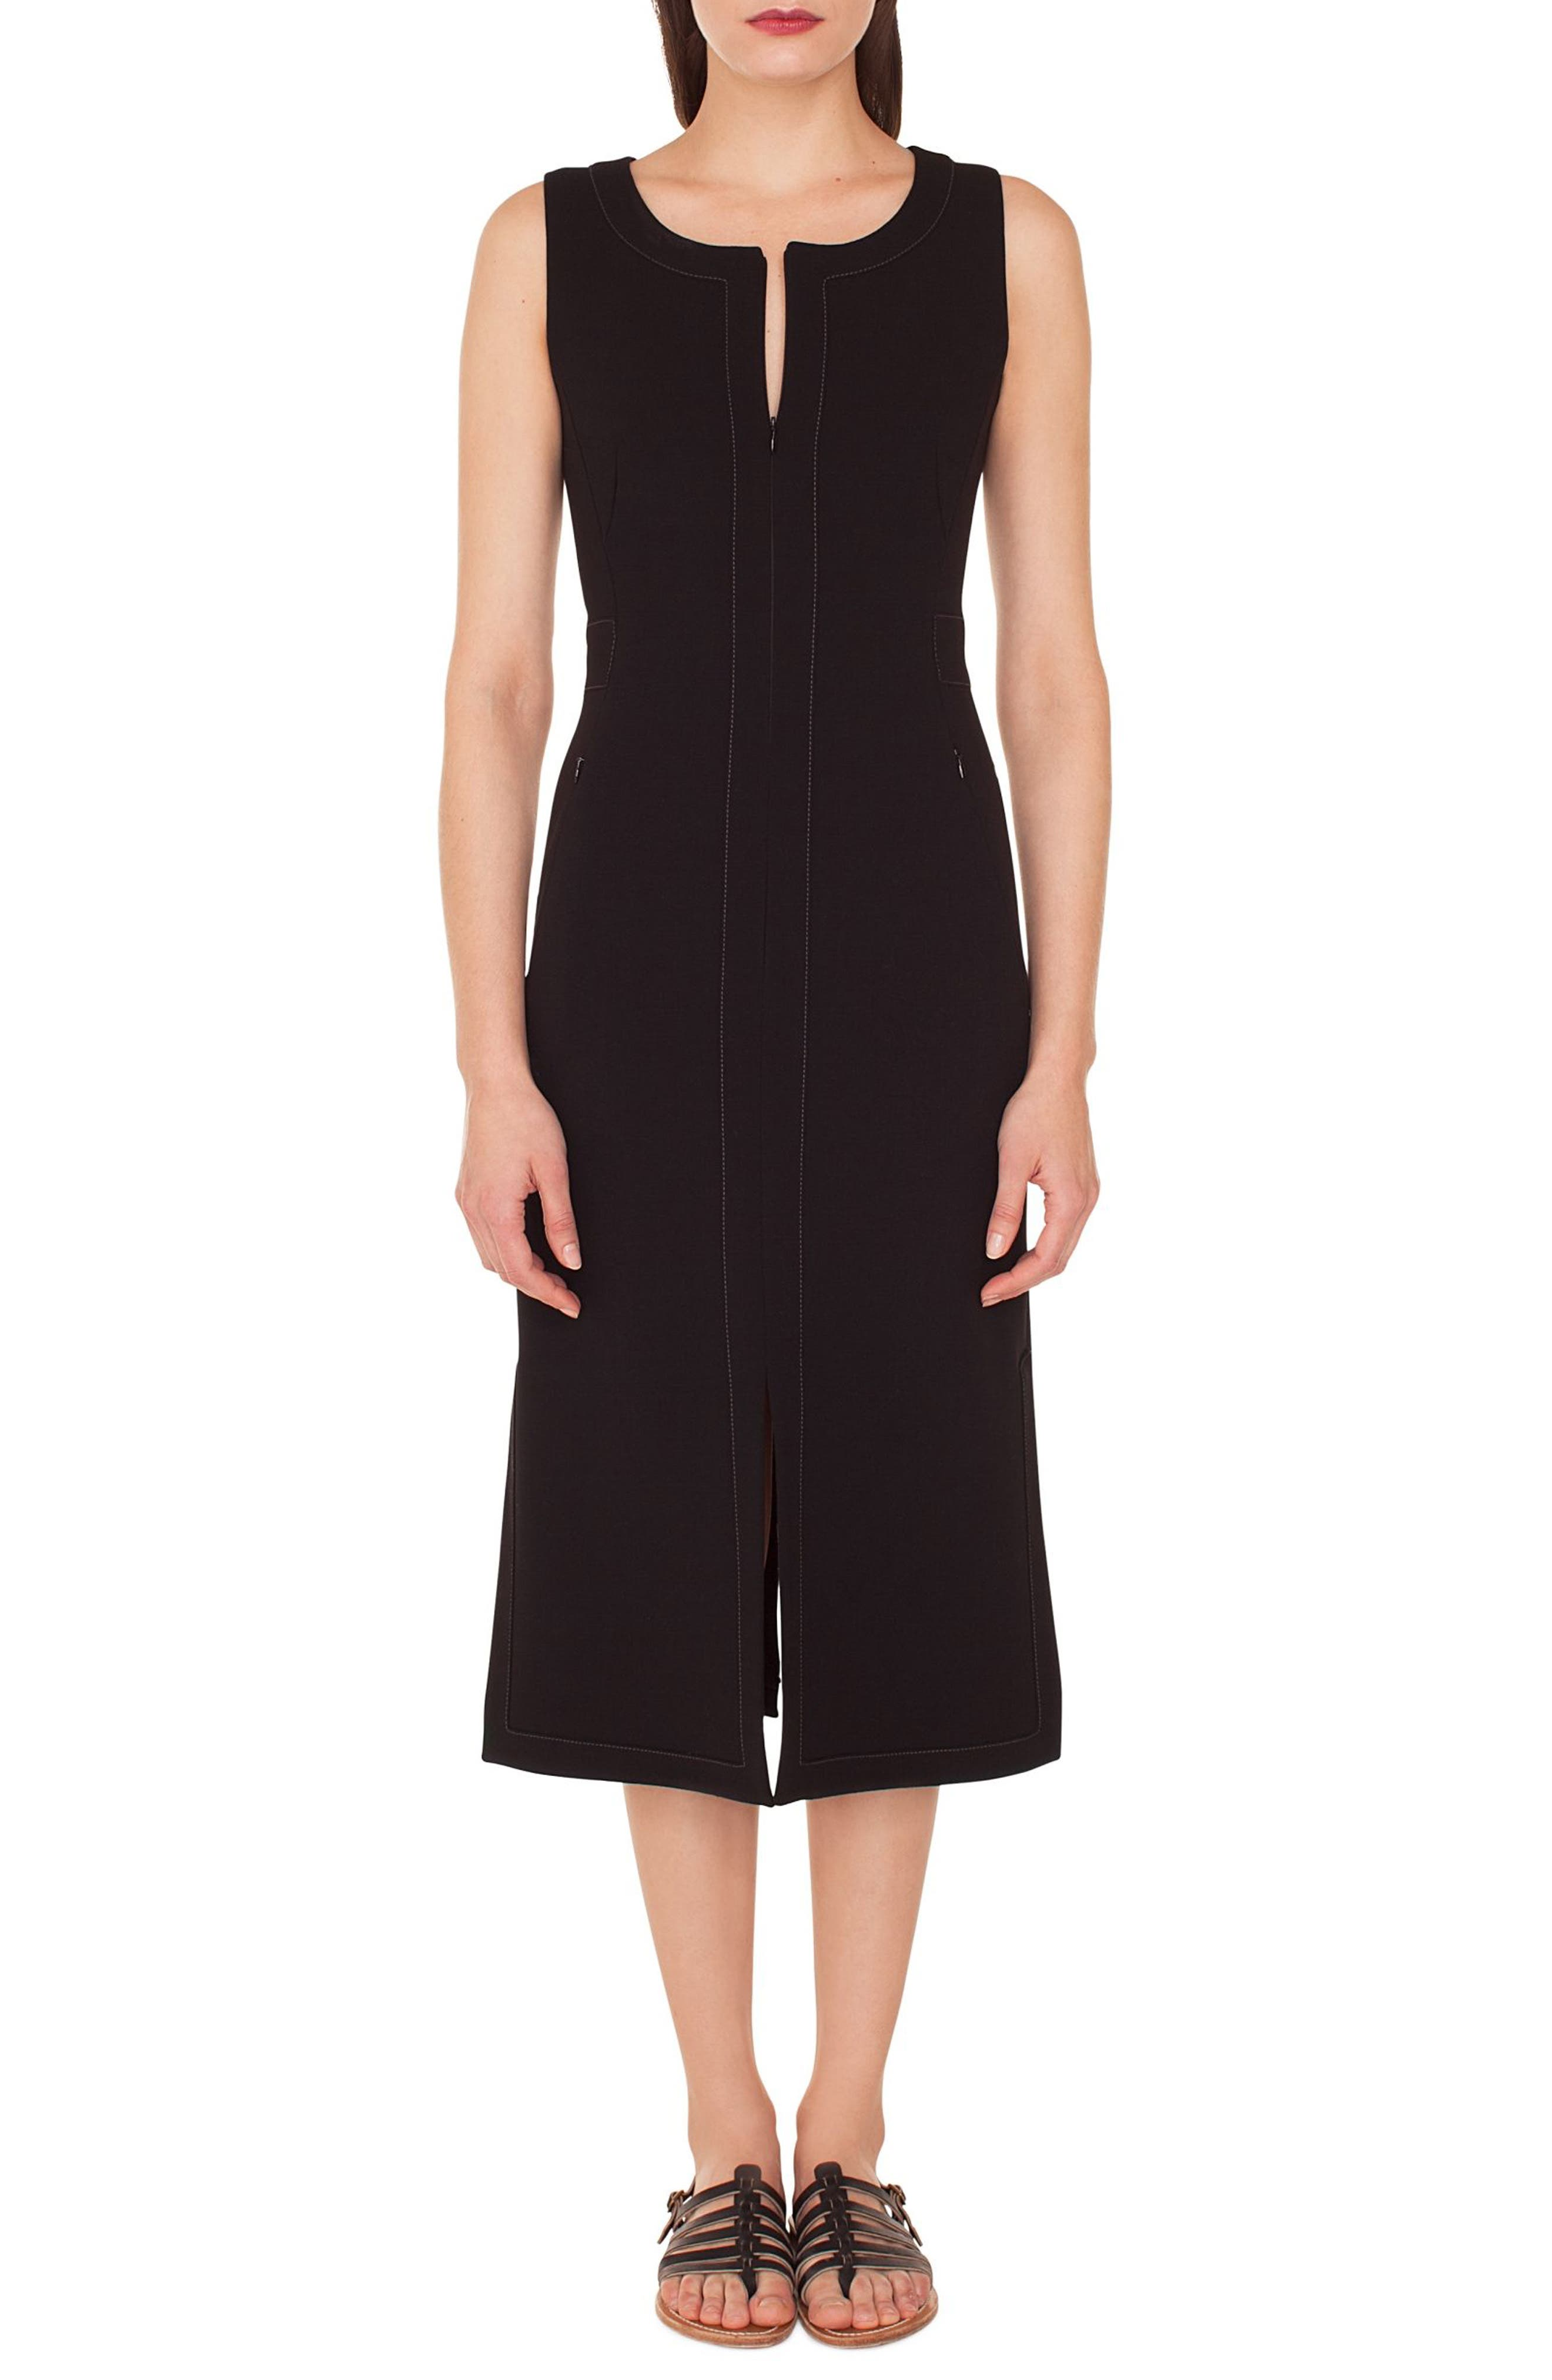 Topstitch Double Face Stretch Wool Dress,                         Main,                         color, BLACK